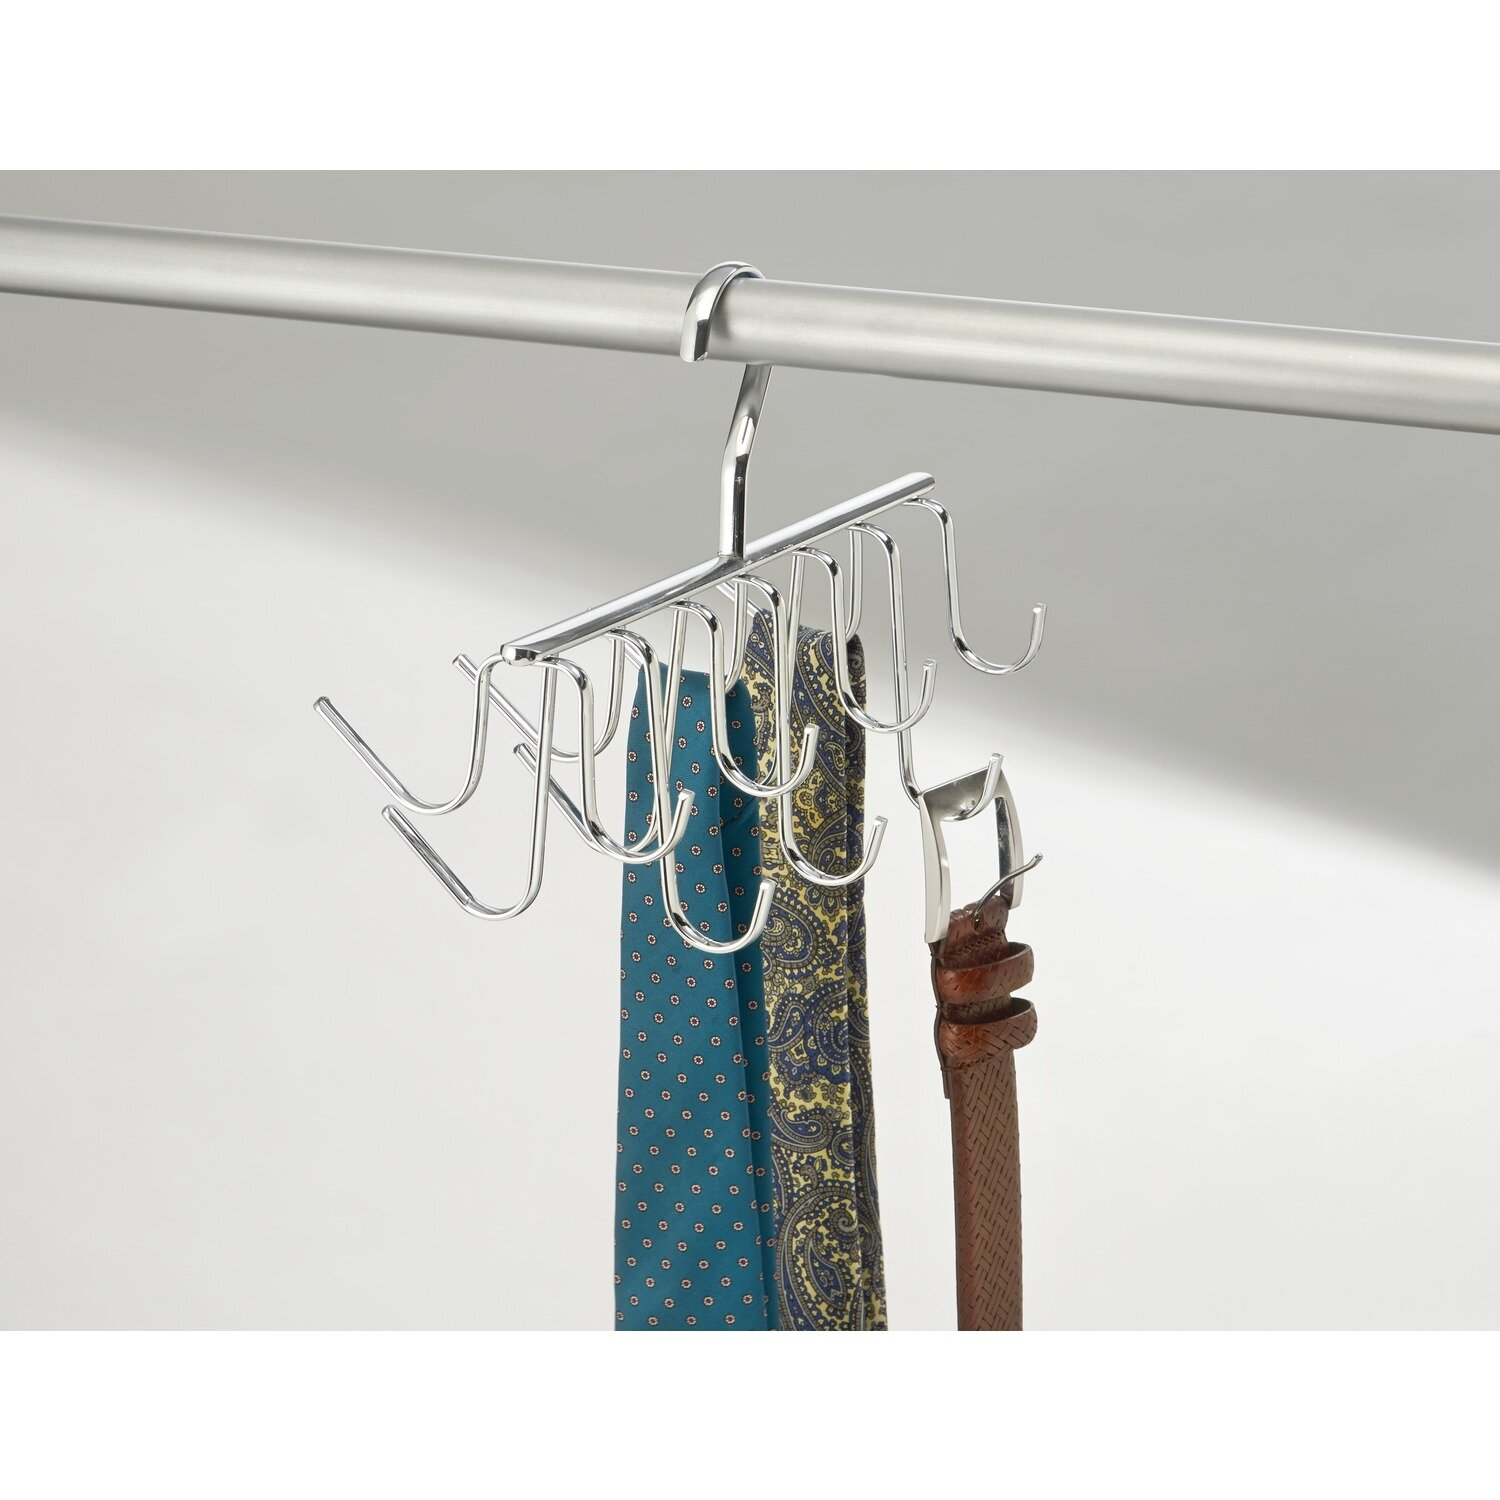 Interdesign axis hanging coat rack wayfair for Inter designs